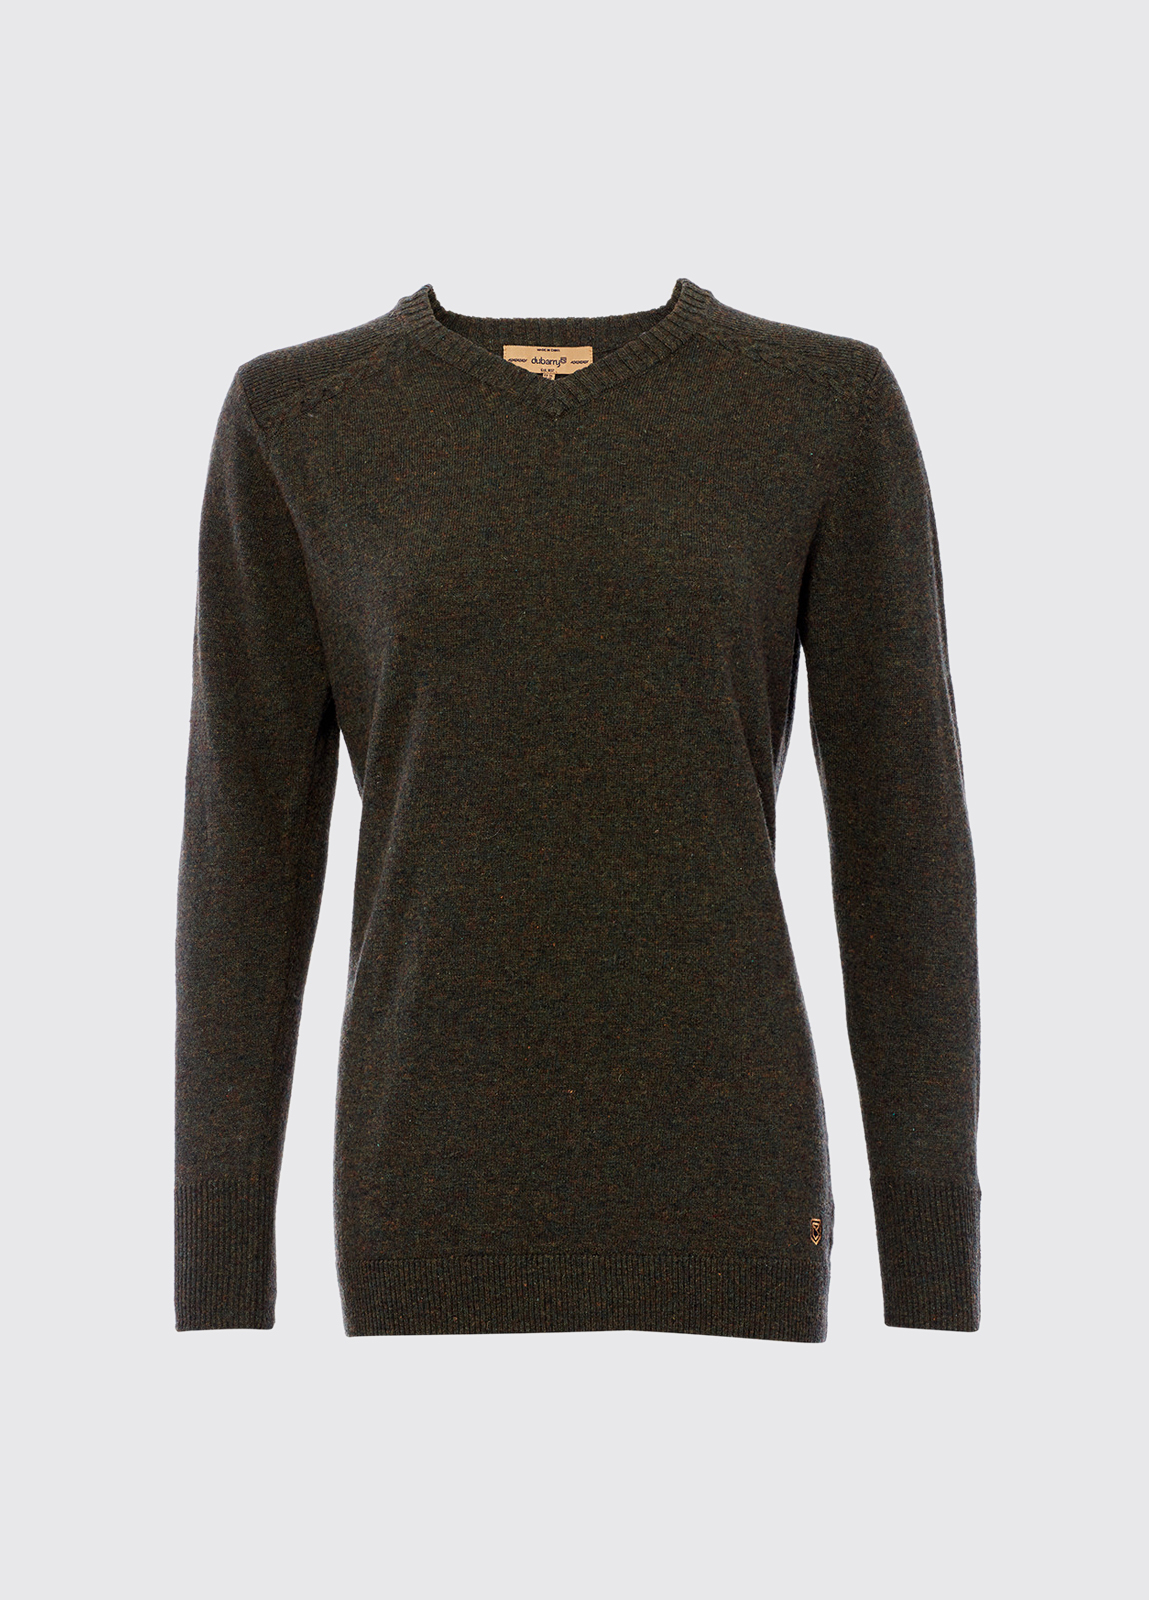 Ballycastle Sweater - Olive